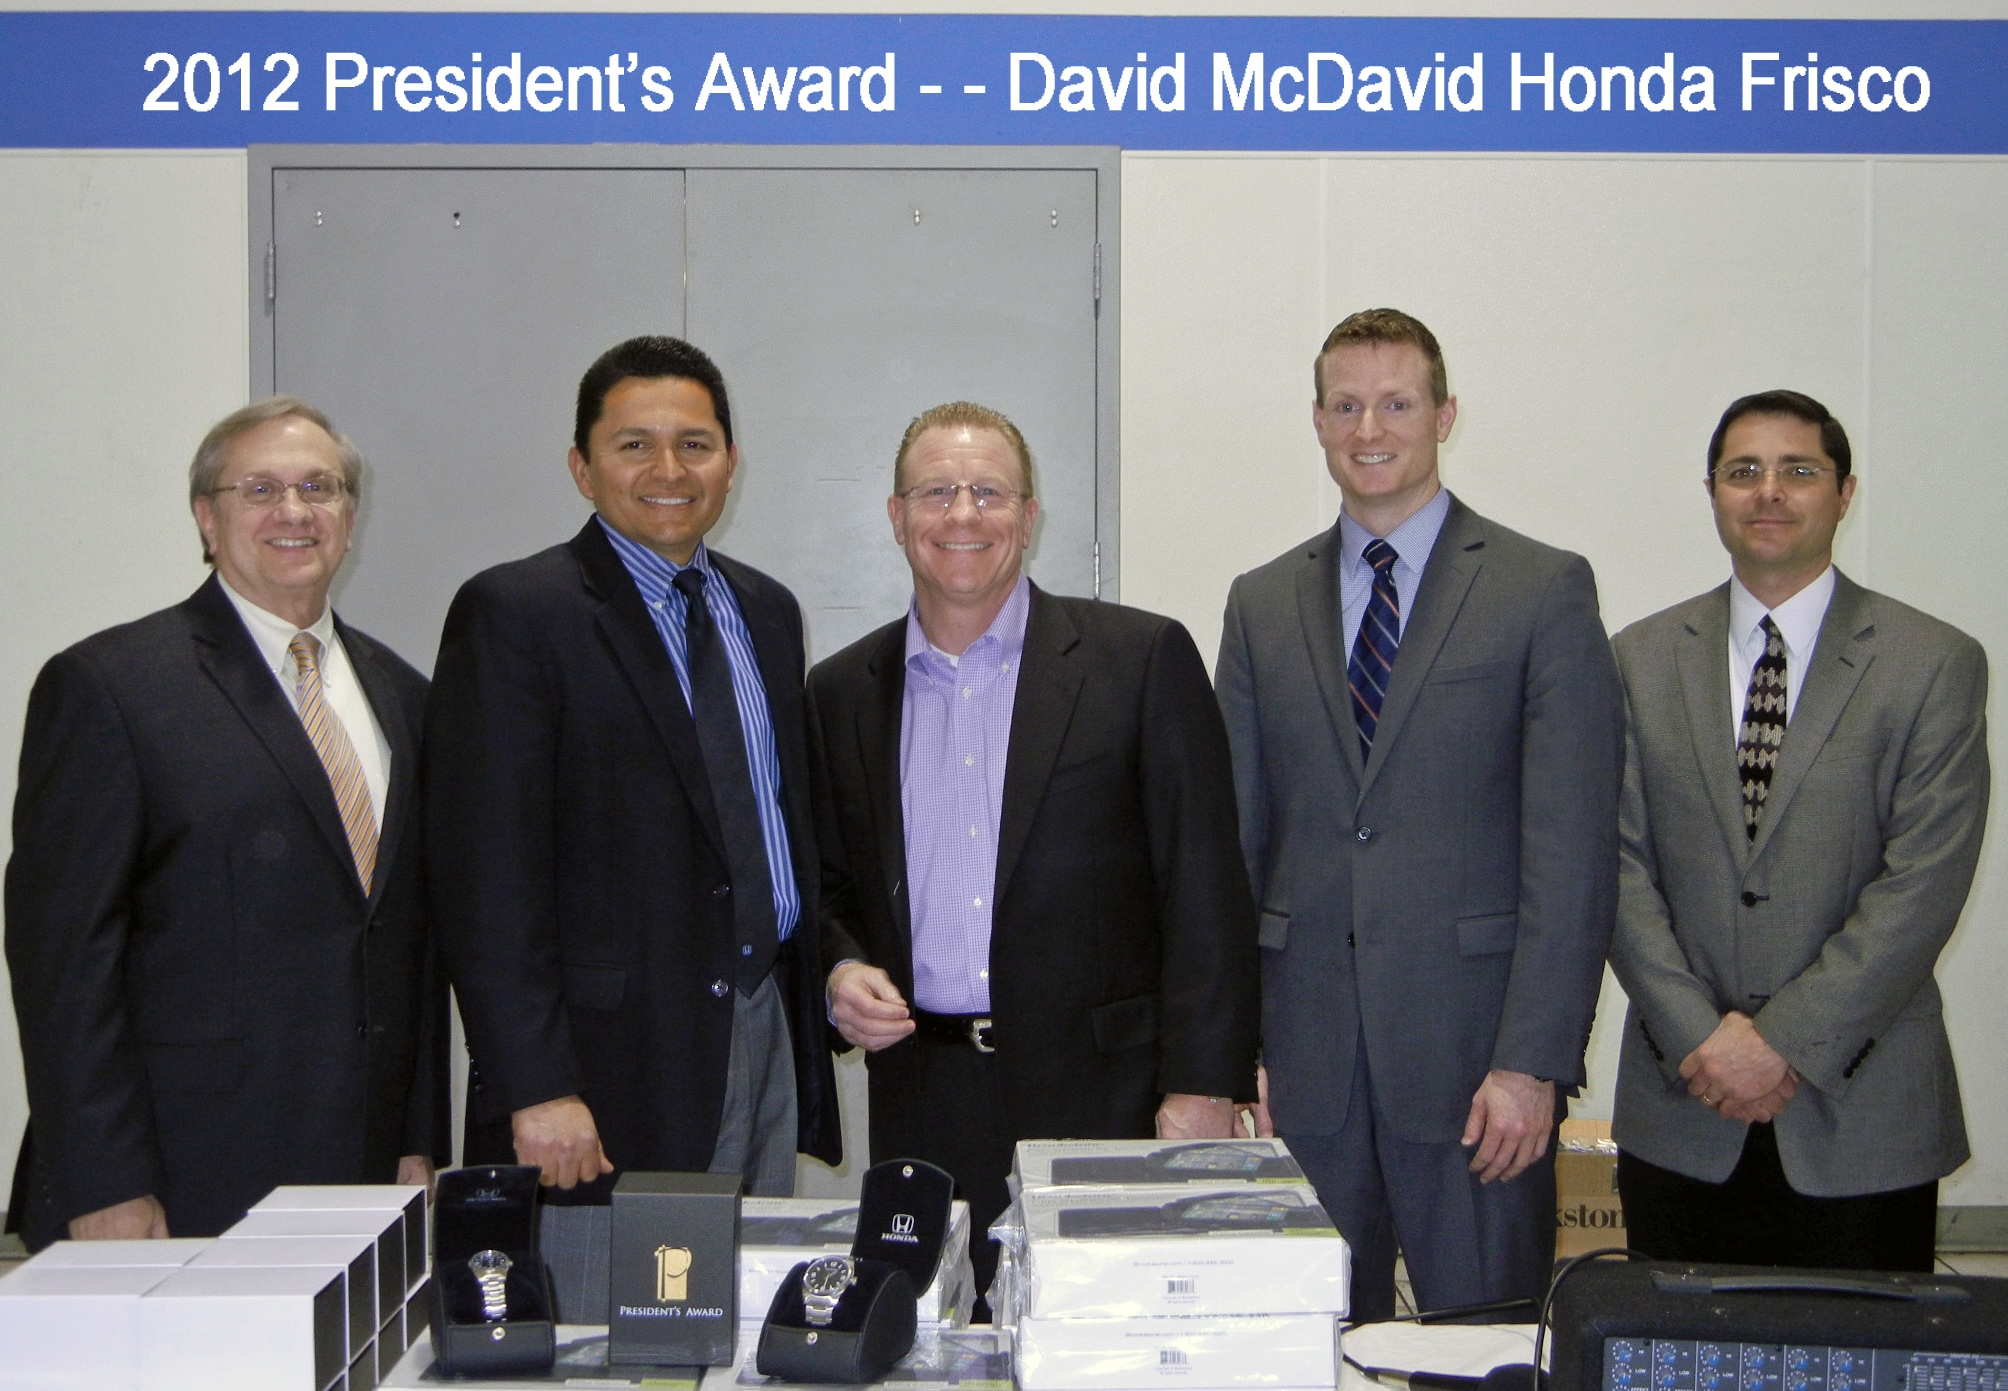 David mcdavid honda frisco honda president s award winner for David mcdavid honda of frisco